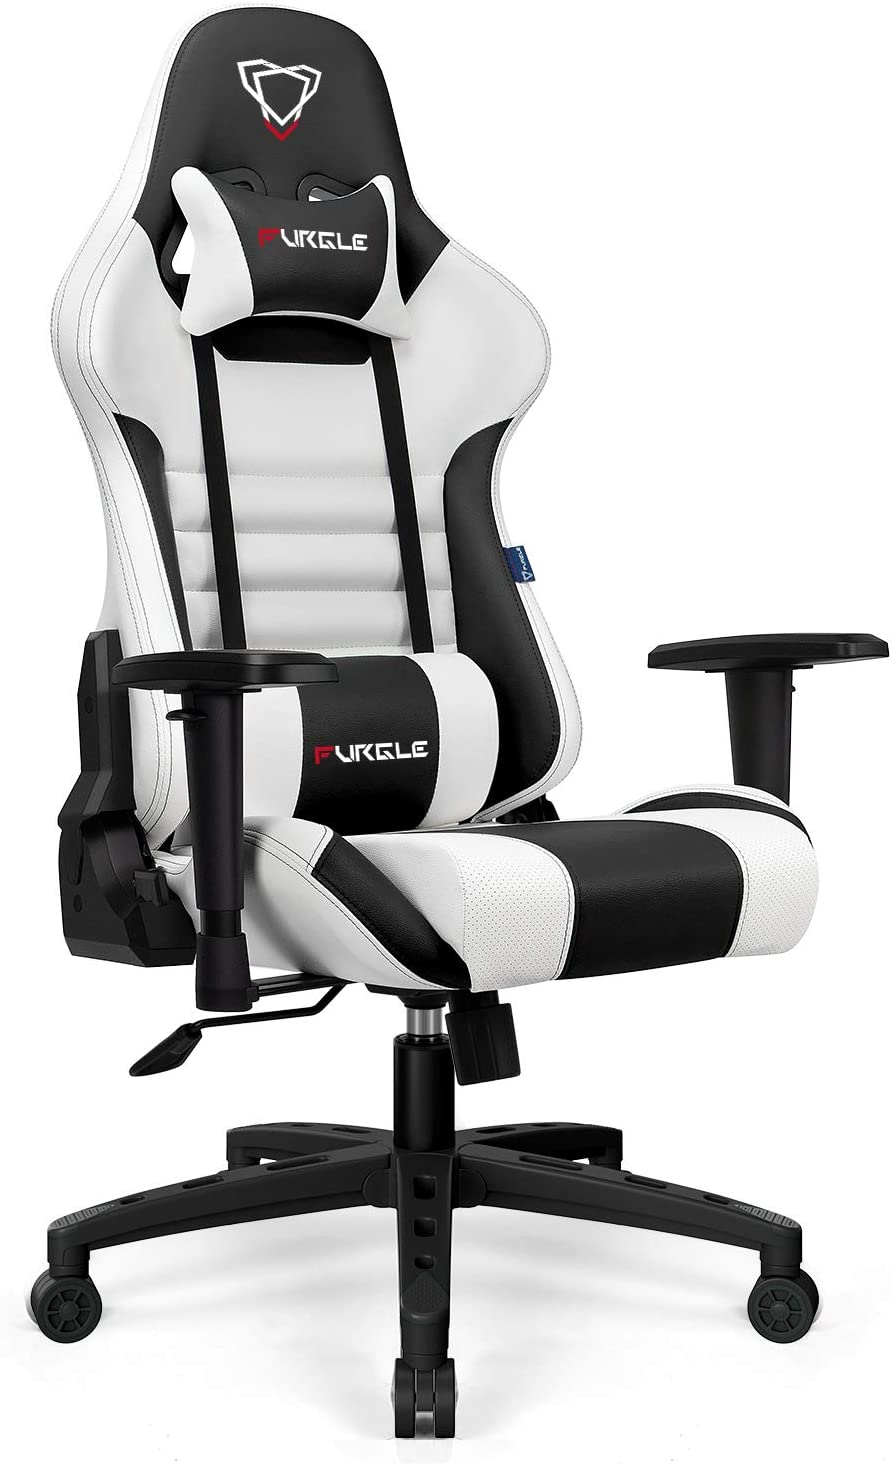 Furgle Gaming Chair Review